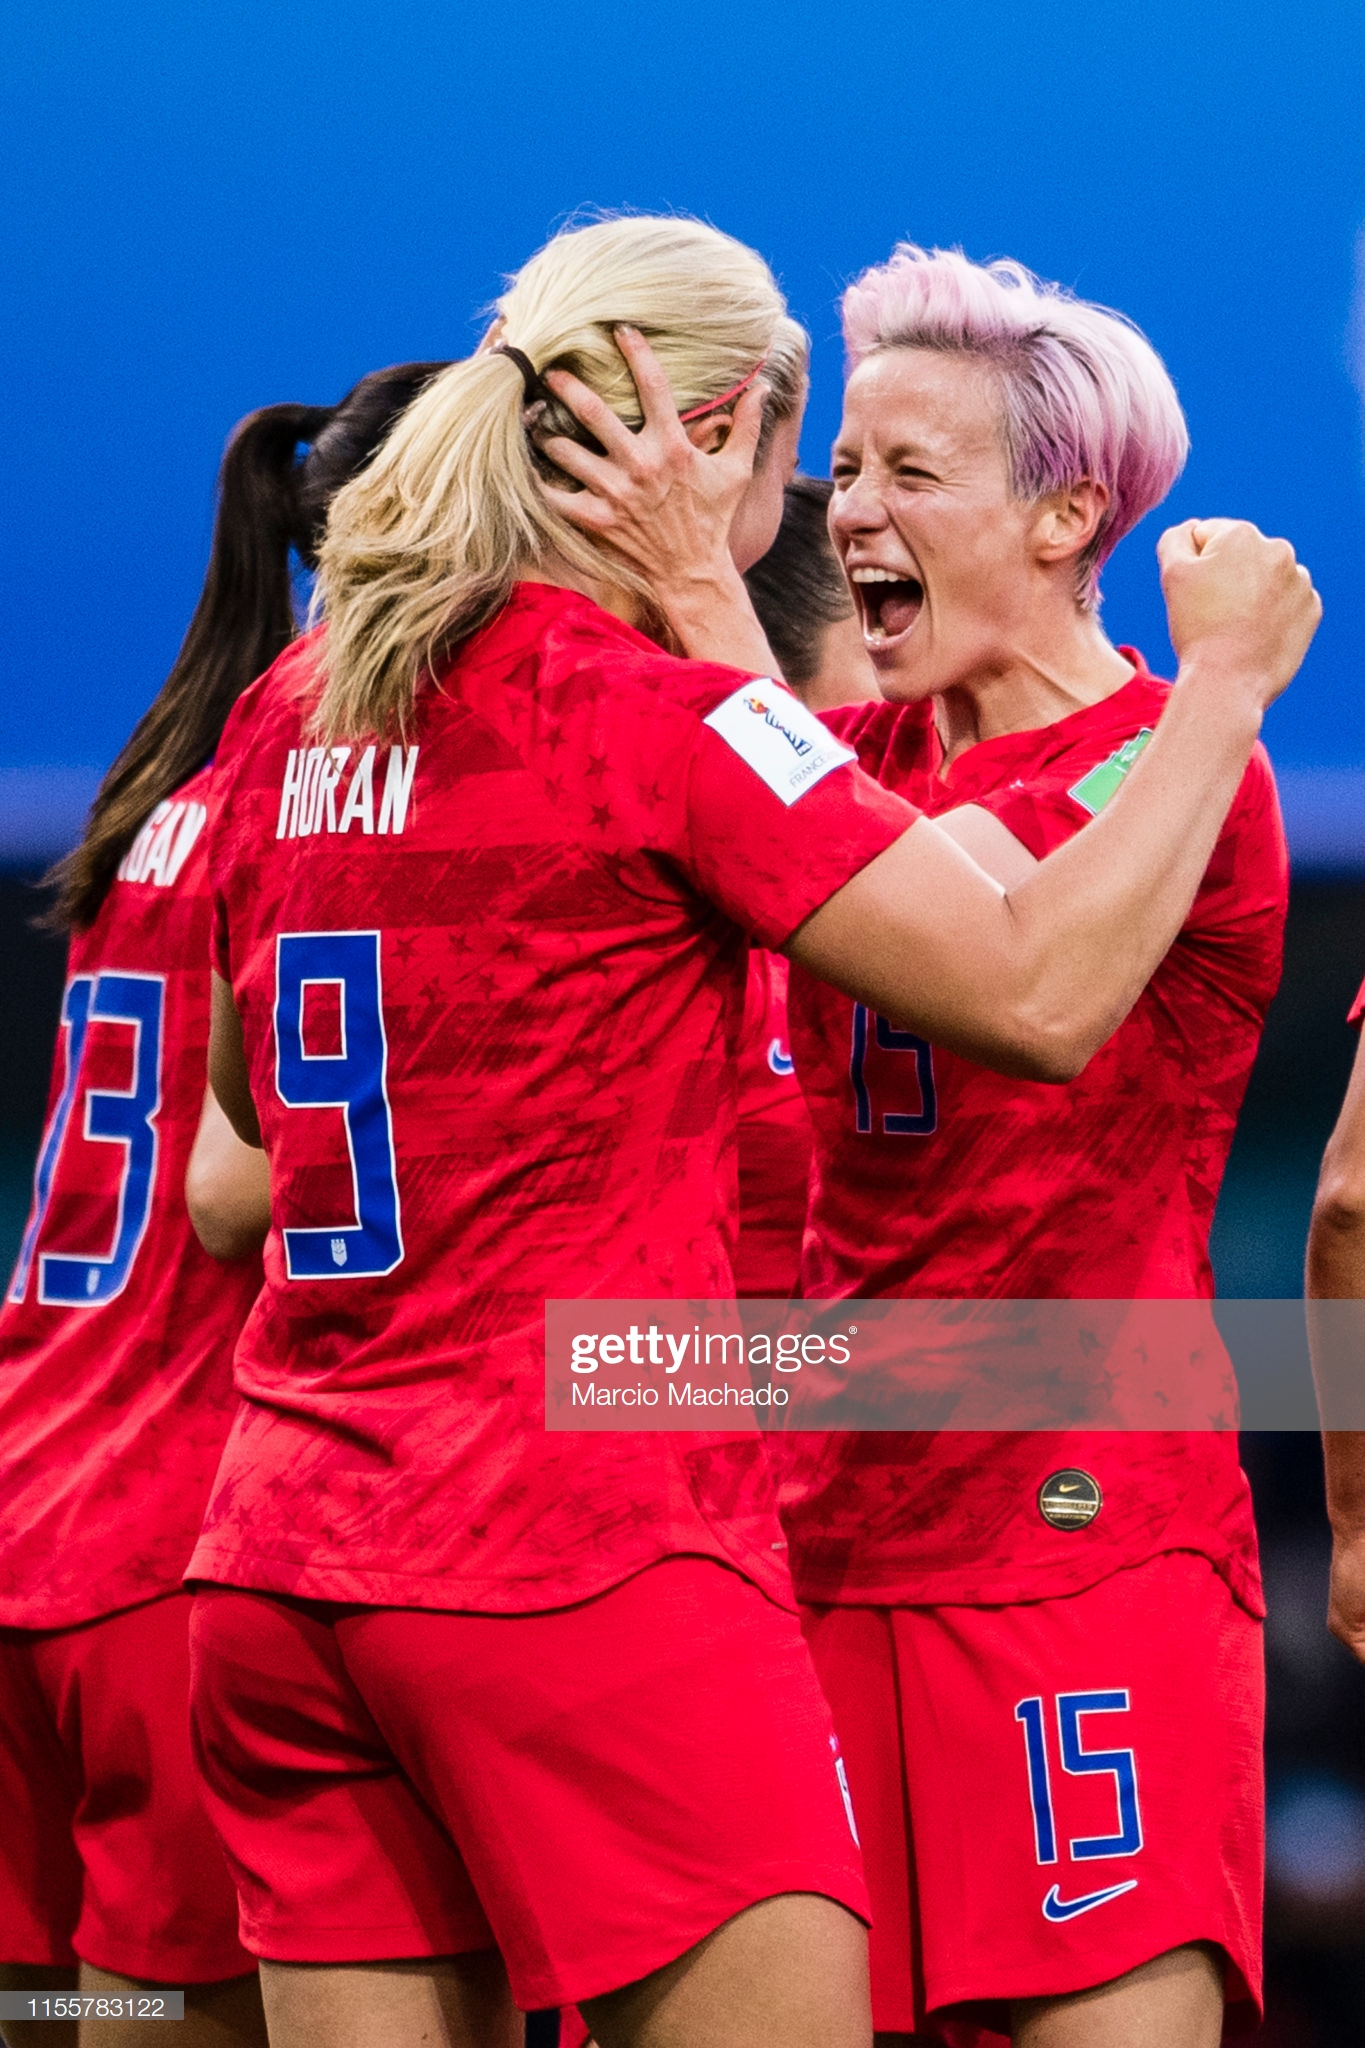 USA v Thailand: Group F - 2019 FIFA Women's World Cup France  REIMS, FRANCE - JUNE 11: Lindsey Horan of United States (L) celebrates a goal with Megan Rapinoe (R) during the 2019 FIFA Women's World Cup France group F match between USA and Thailand at Stade Auguste Delaune on June 11, 2019 in Reims, France. (Photo by Marcio Machado/Getty Images)